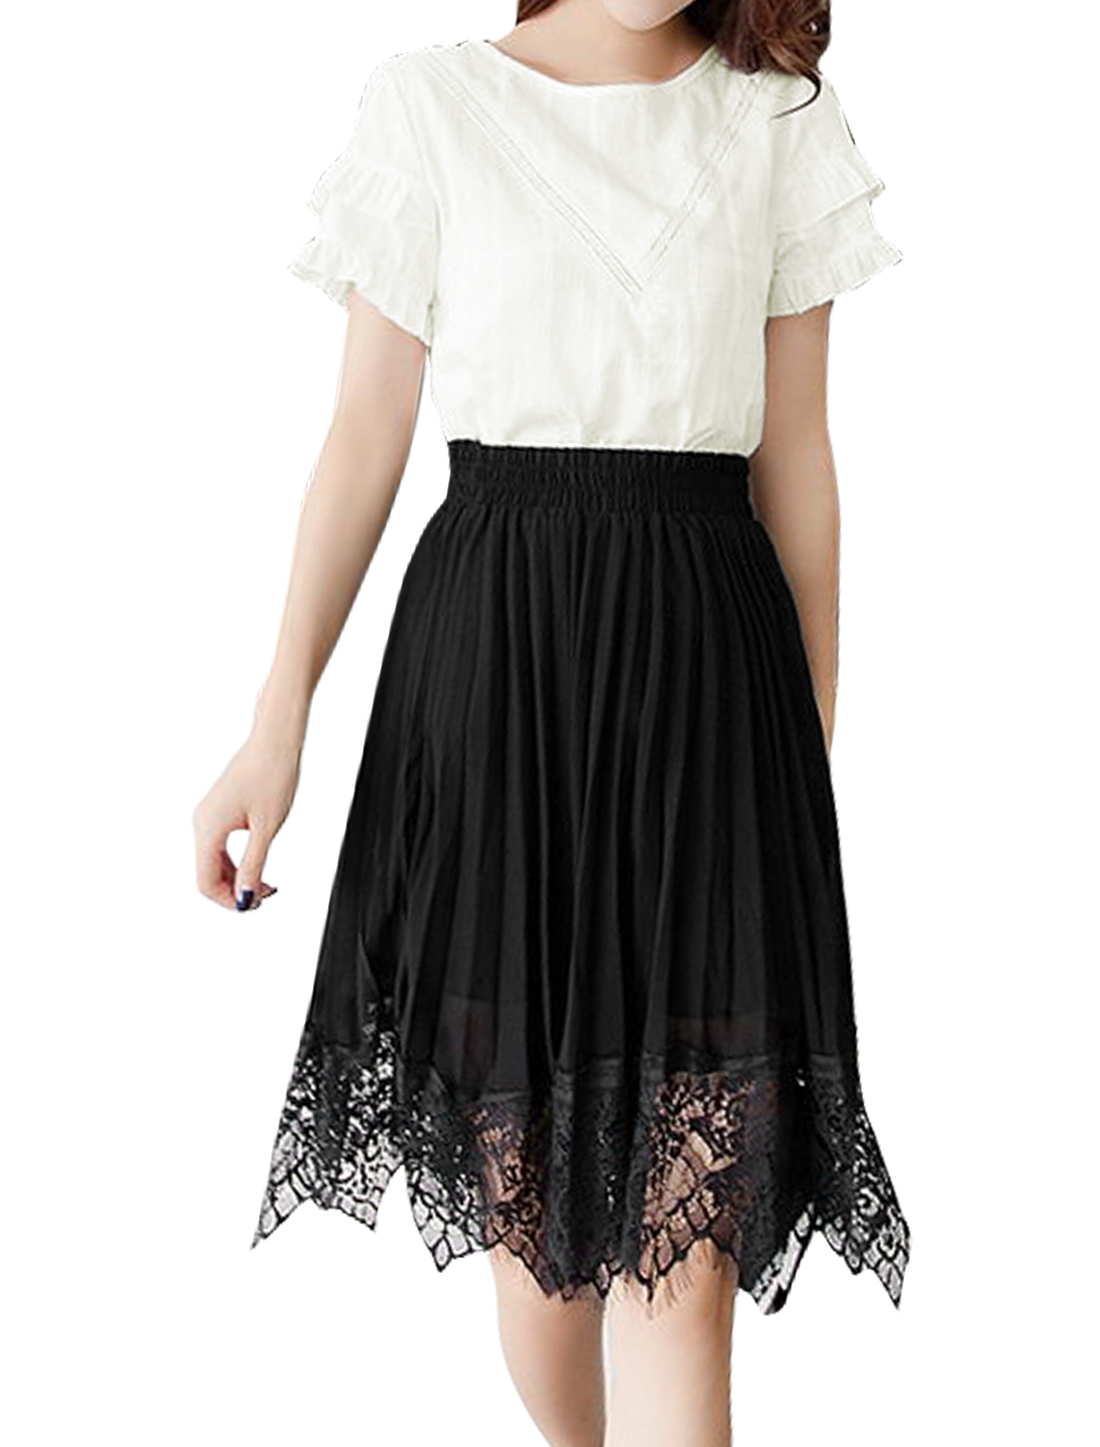 Women Ruffle Sleeves Top w Pleated Lace Panel Chiffon Skirt Sets White XS